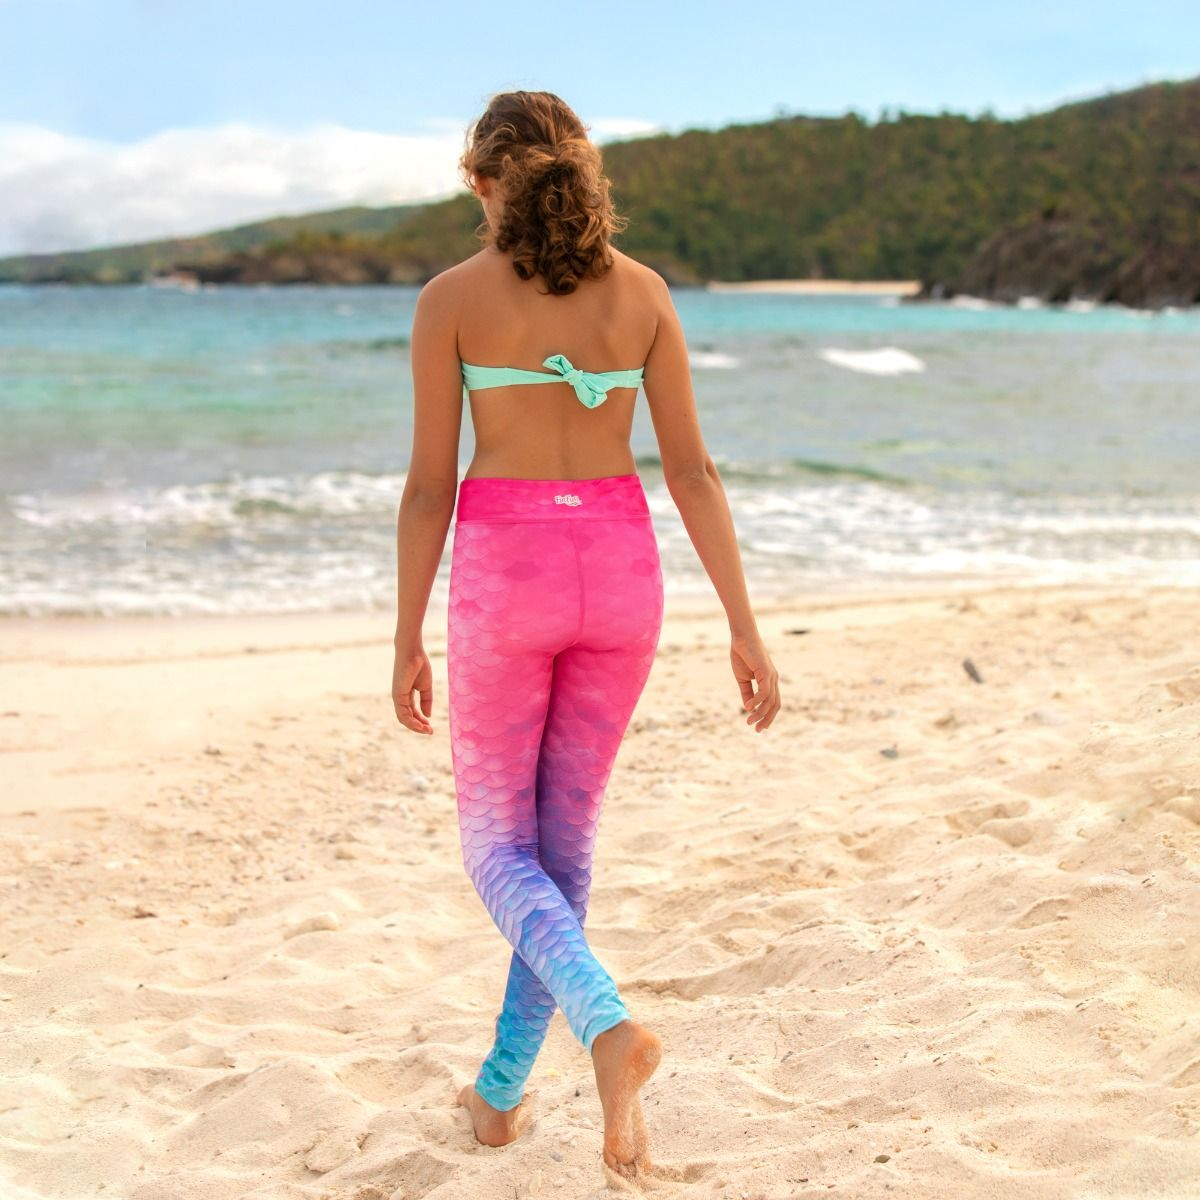 b98b52bde55 ... a young girl walks on the beach looking at the sand while wearing pink  to blue a kid wears pink to blue ombre mermaid scale leggings ...